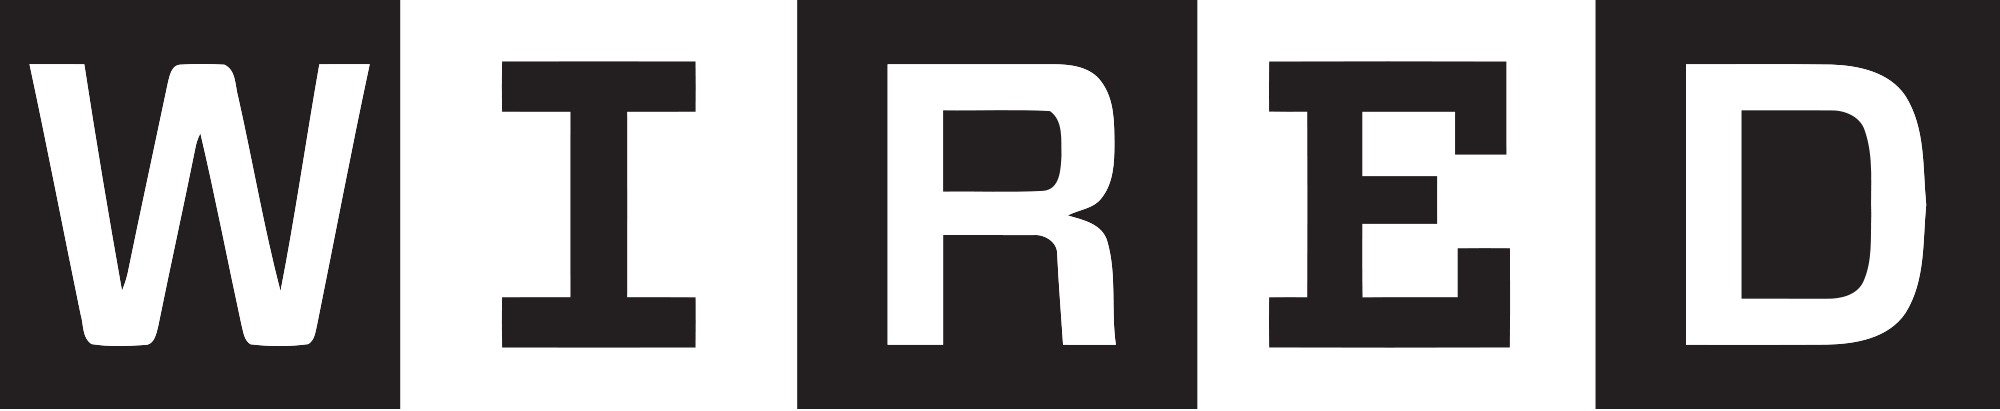 WIRED_LOGO.png